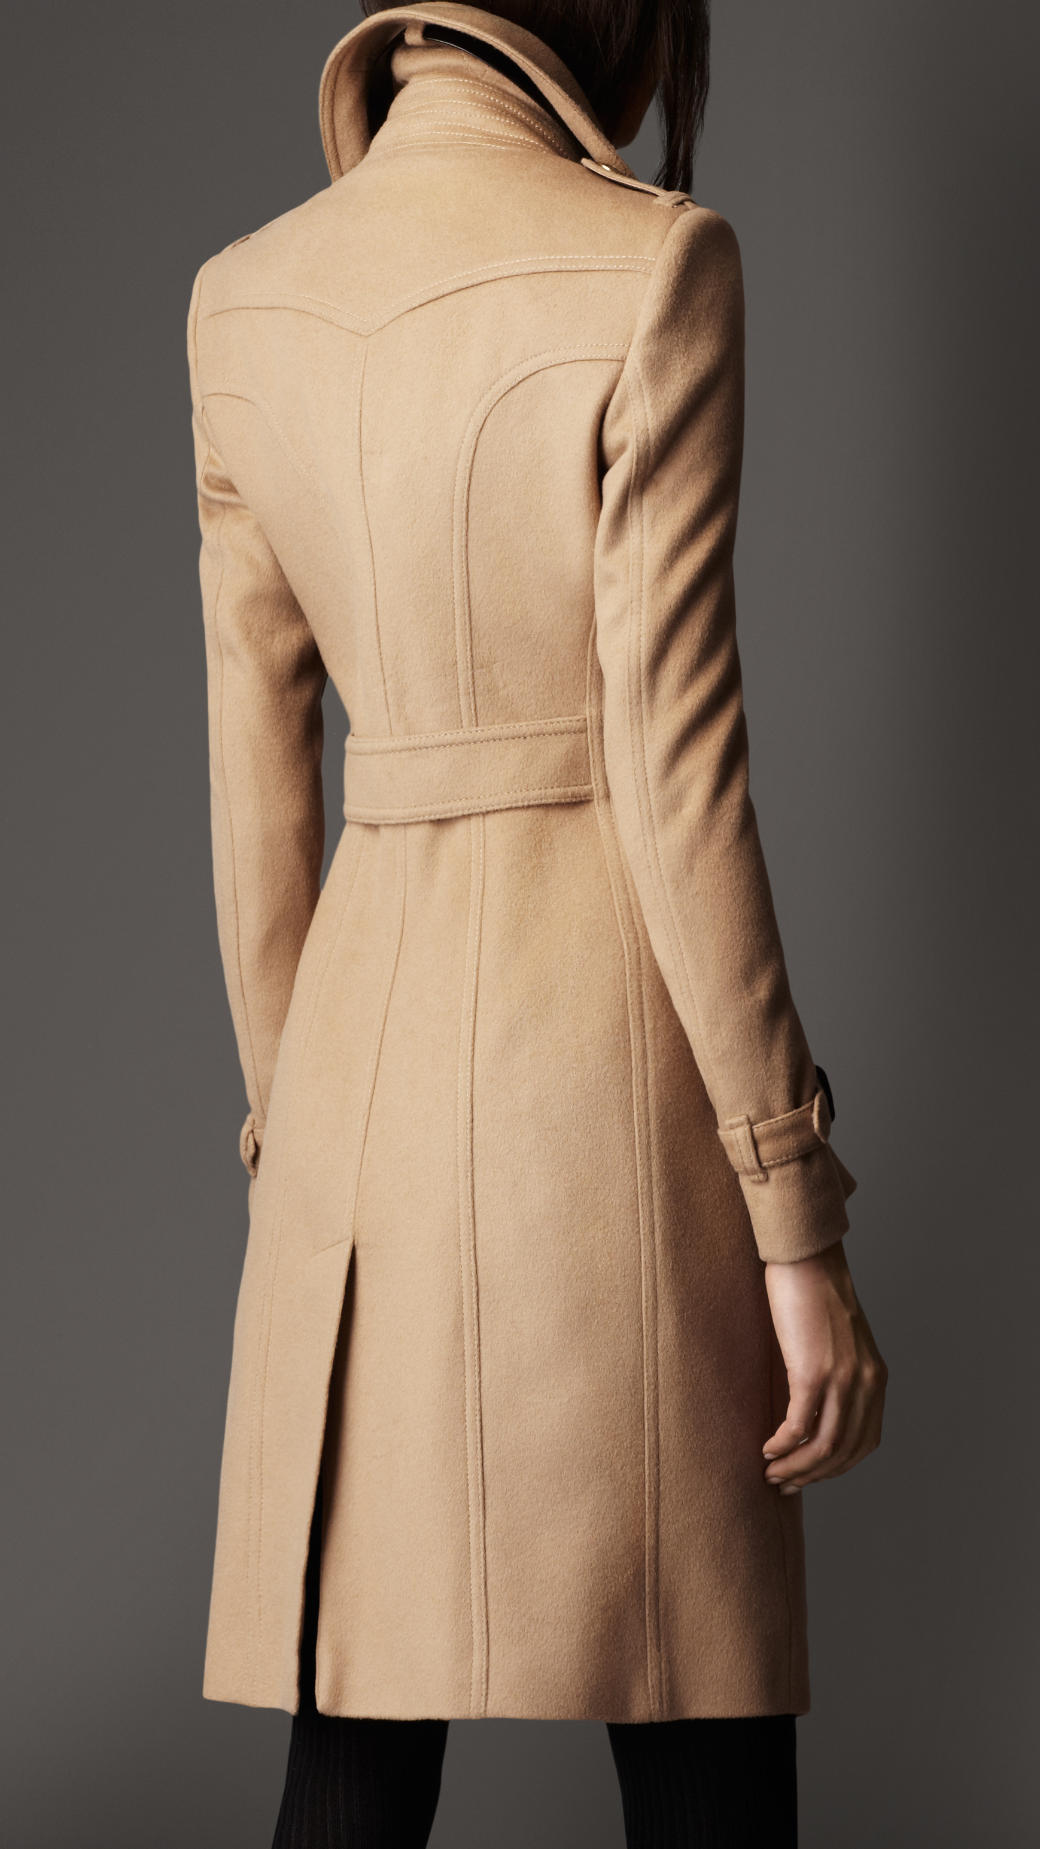 Burberry Leather Detail Wool Cashmere Coat in Natural - Lyst